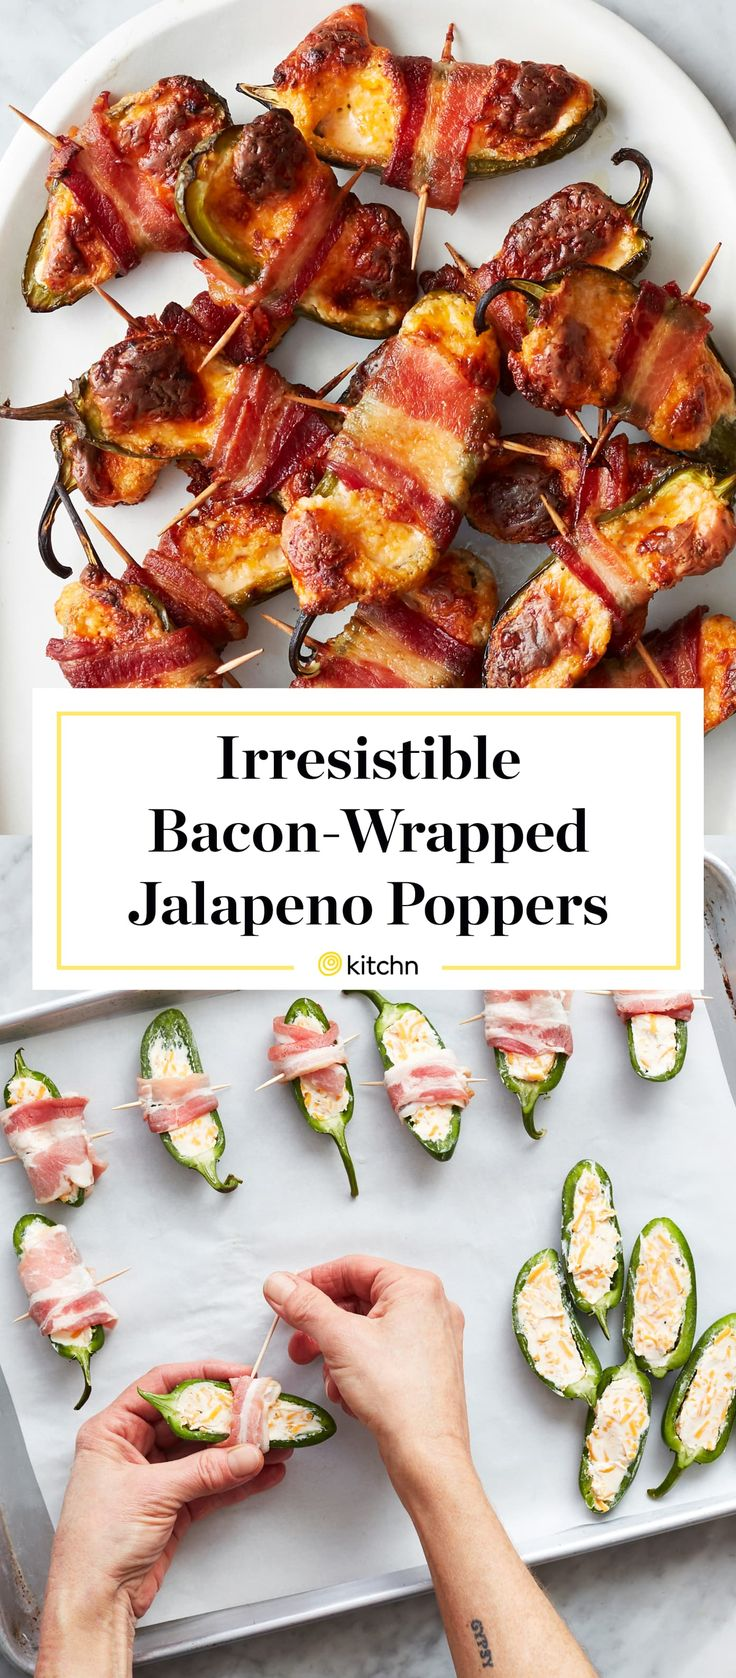 Bacon Wrapped Jalapeno Poppers, Stuffed Jalapenos With Bacon, Stuffed Hot Peppers, Bacon Wrapped Appetizers, Jalapeno Recipes, Bacon Jalapeno Poppers, Pepper Poppers, Bacon Wrapped Asparagus, Appetizer Recipes